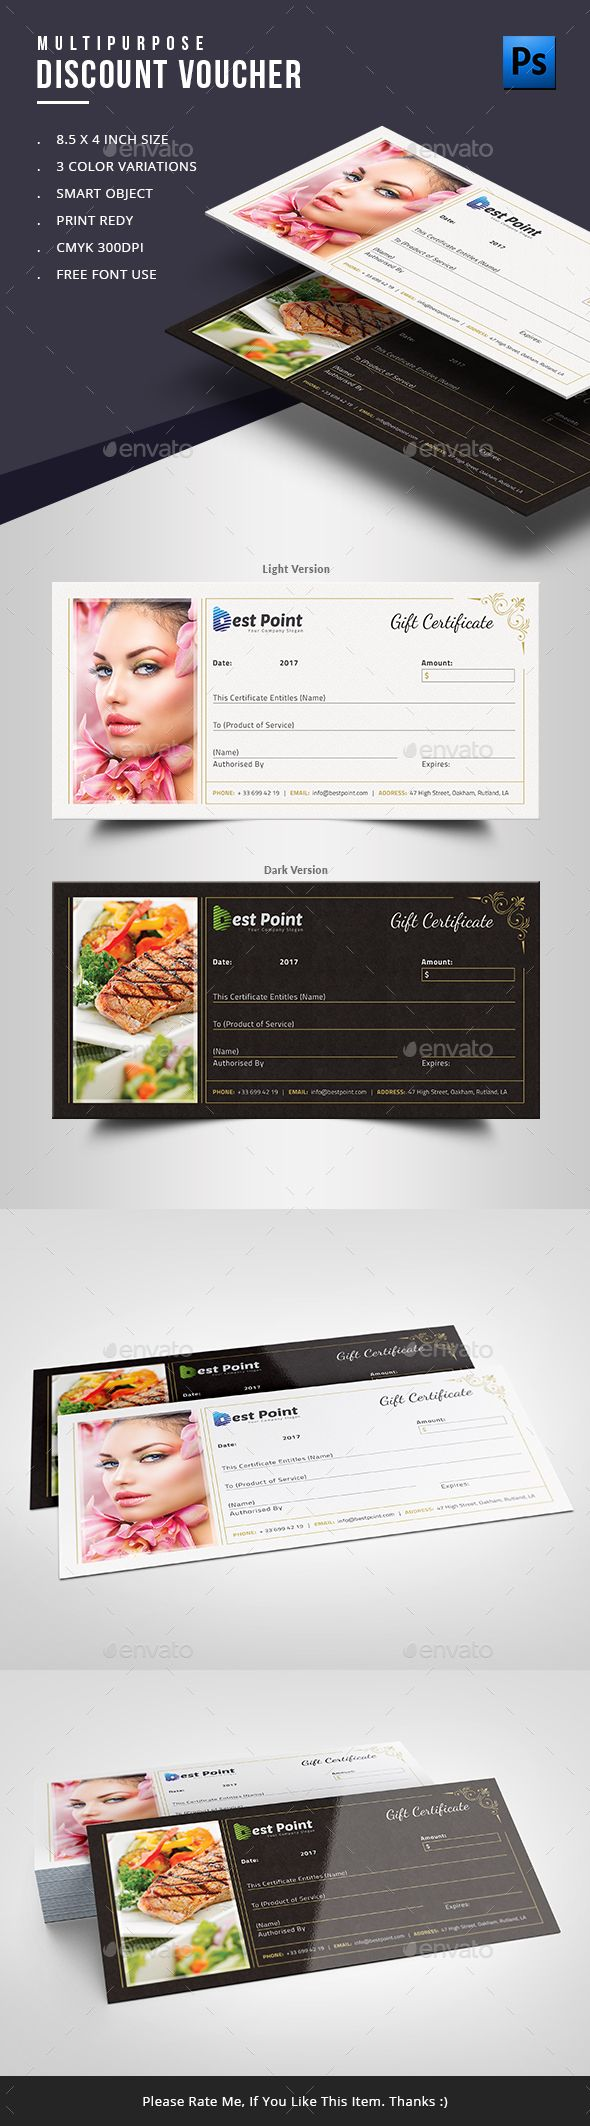 17 best images about discount voucher templates gift voucher template is fully editable and customizable in adobe photoshop you can add your